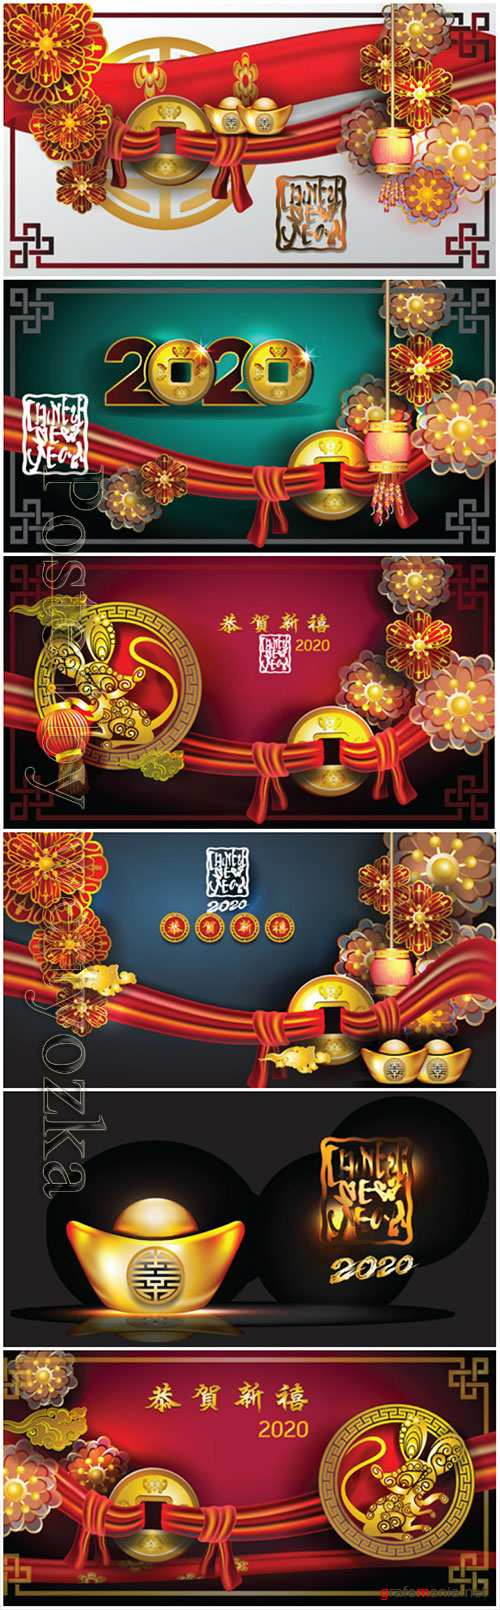 Happy chinese new year 2020, holiday vector with year of rat # 4